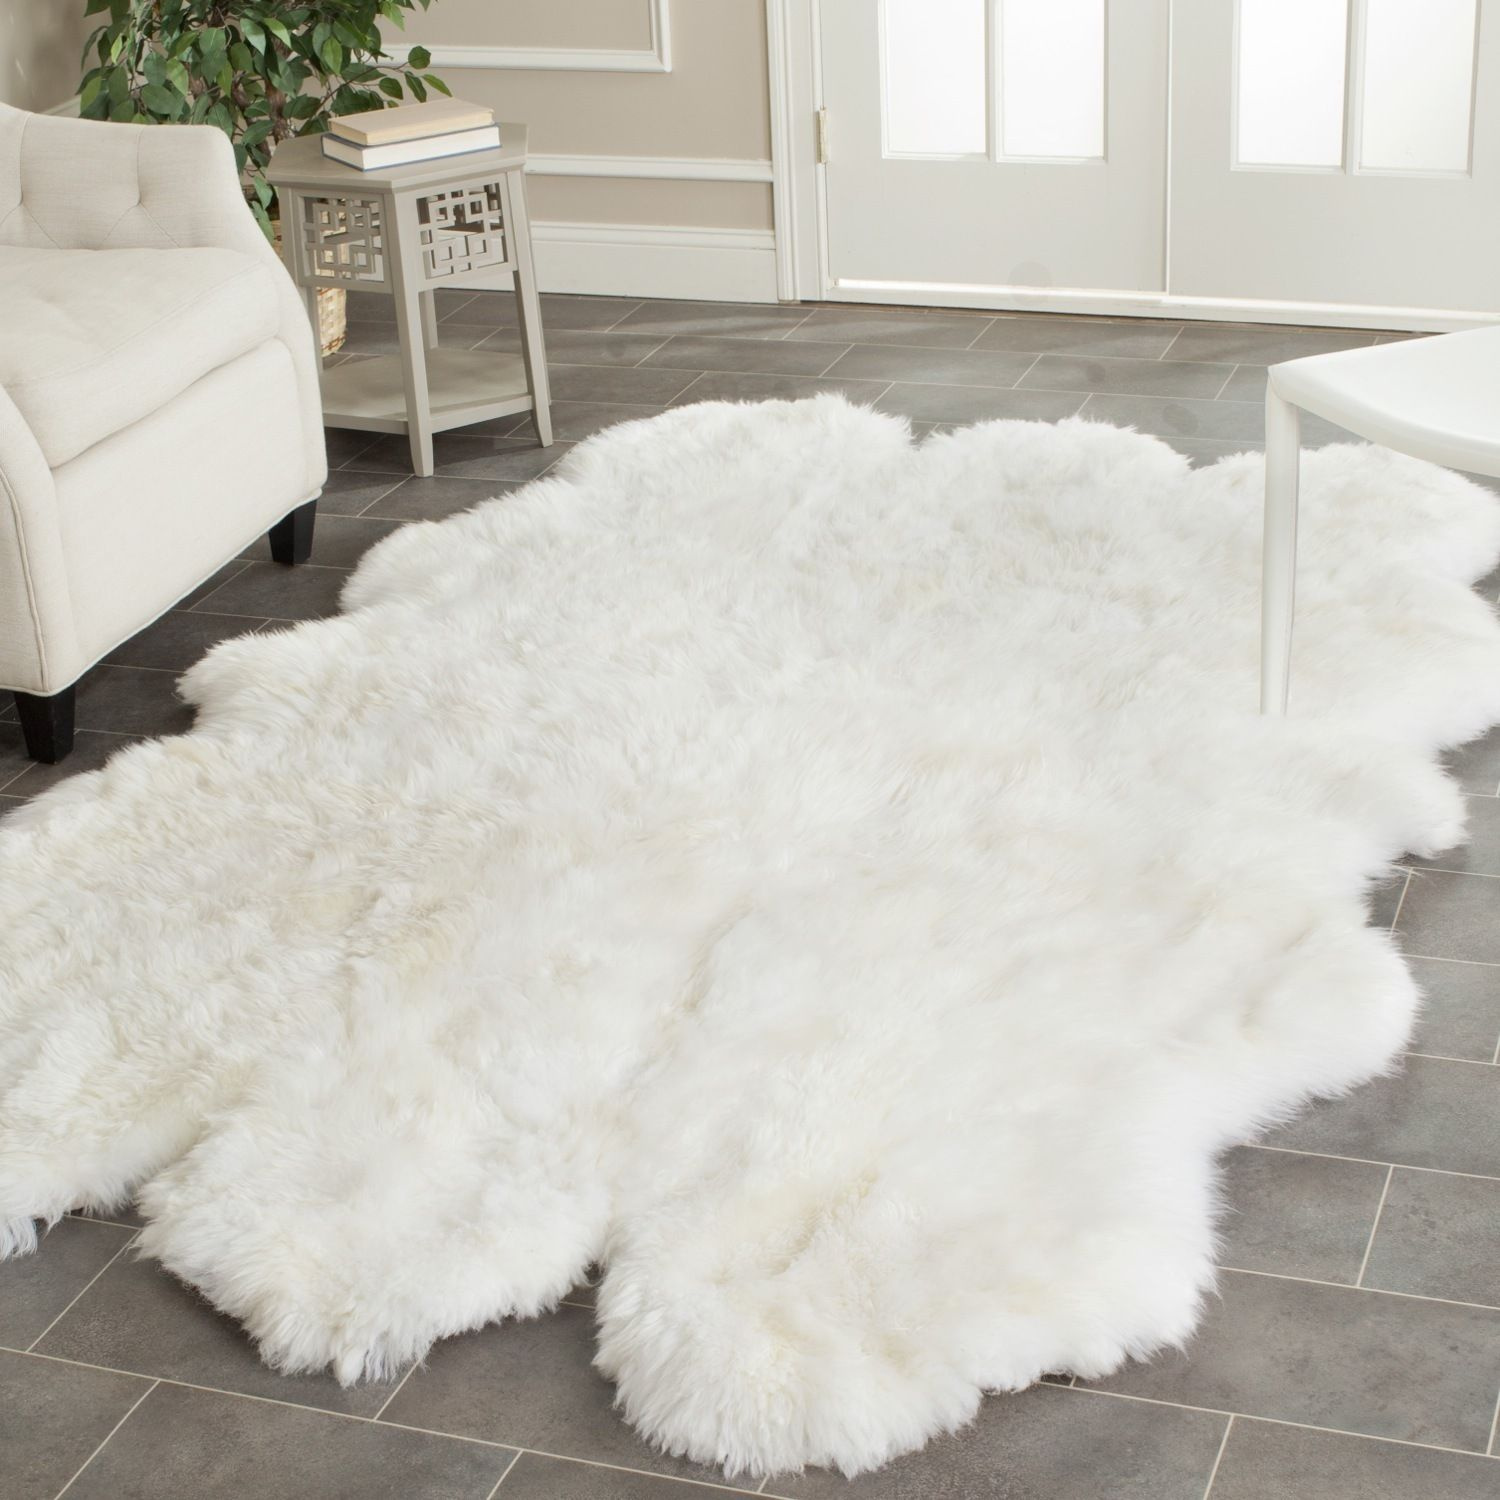 Safavieh s ultra plush Sheepskin rugs offer exceptional decorator